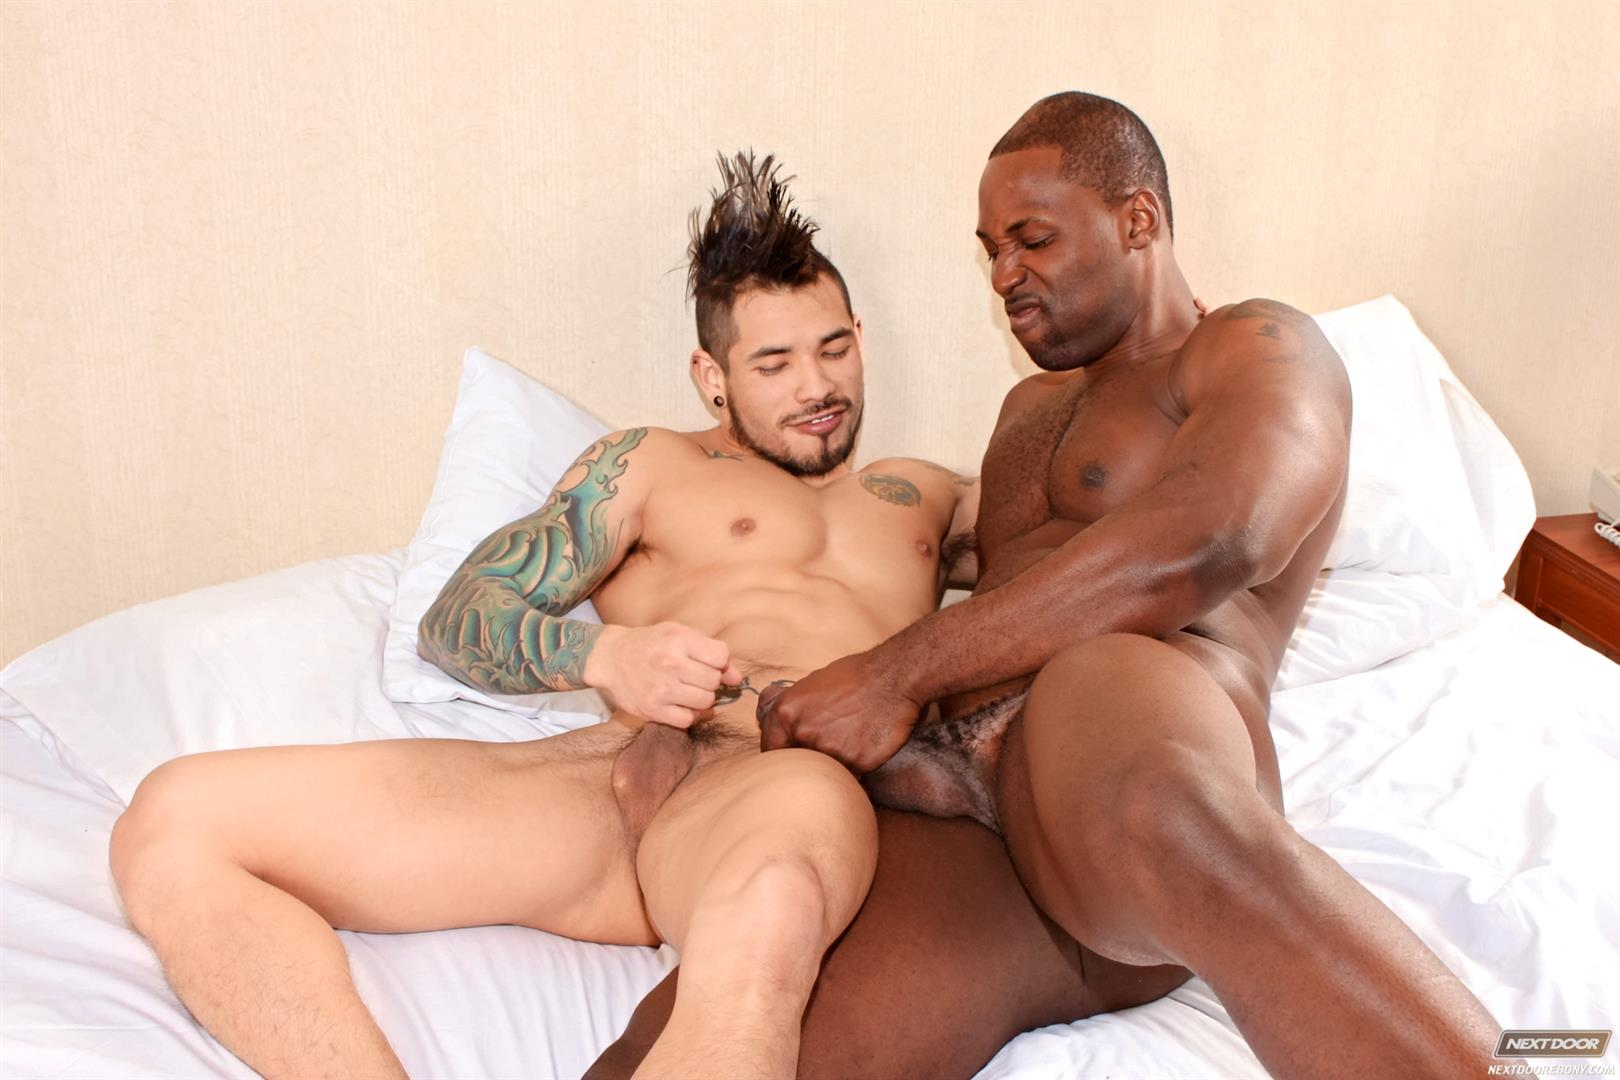 Next Door Ebony Nubius and Draven Torres Big Black Cock Fucking Tight Latino Ass Amateur Gay Porn 14 Big Black Bull Fucks A Young Latino Hipster With His Big Black Cock